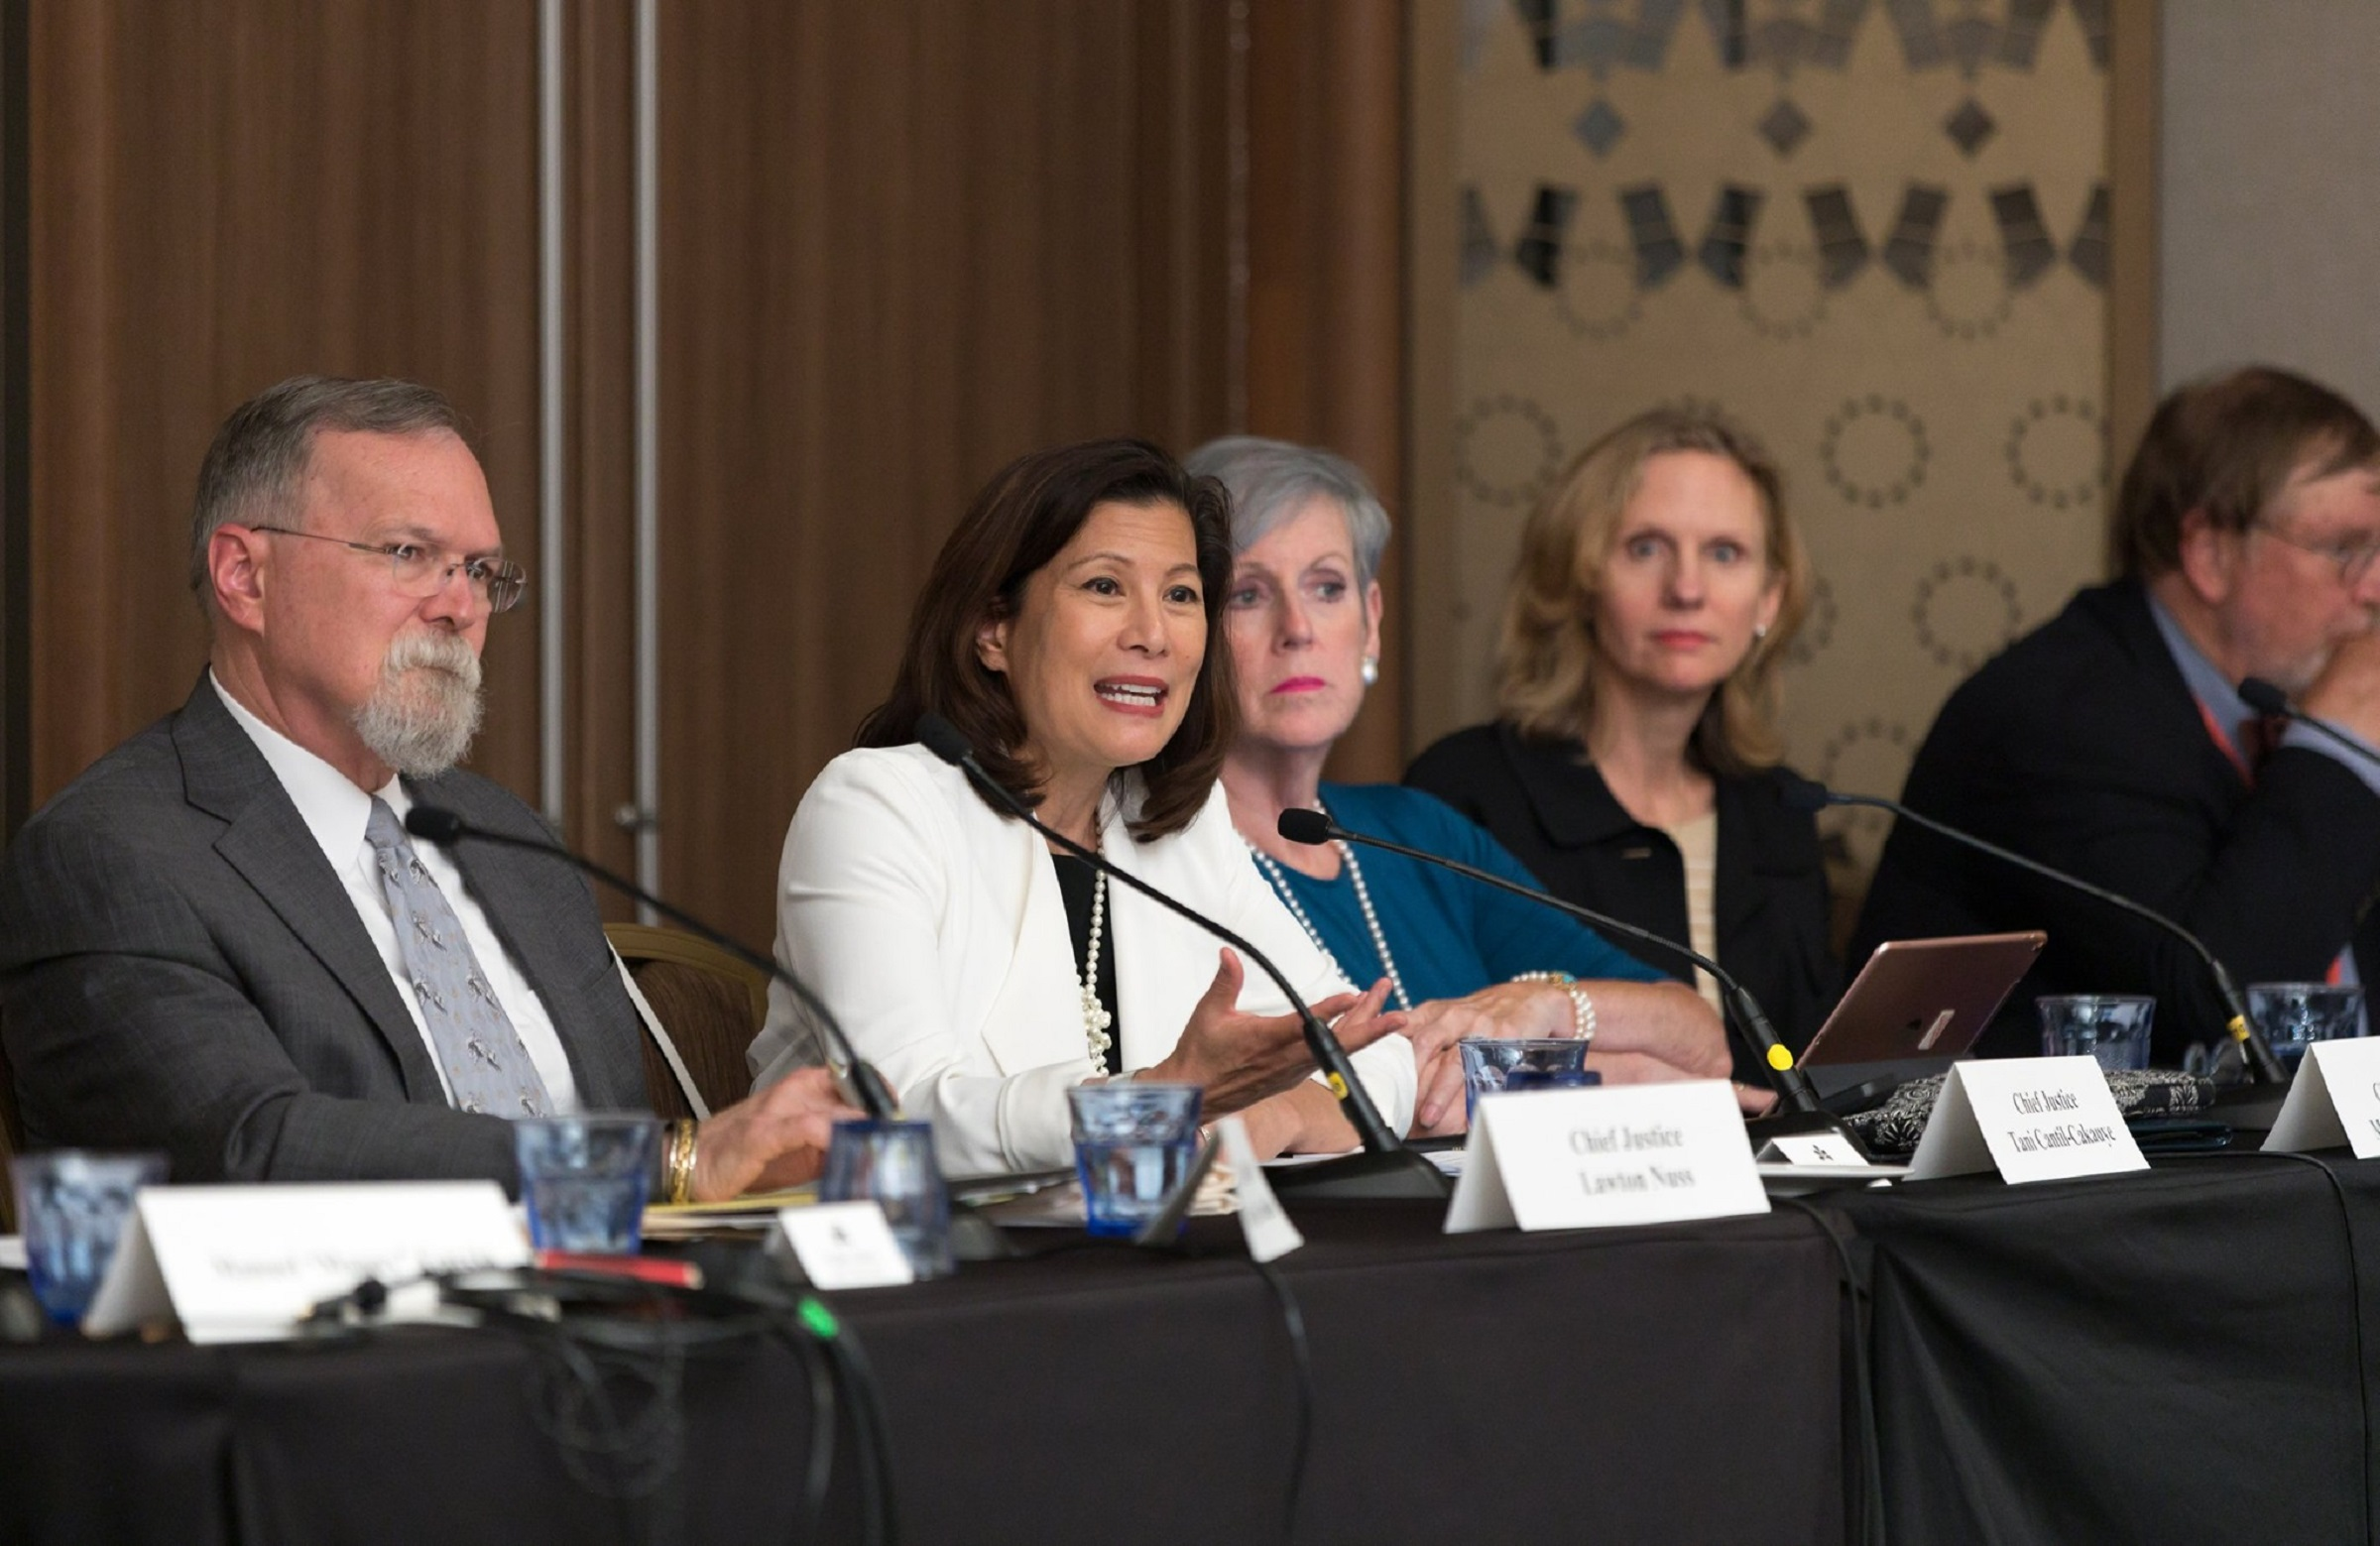 California Supreme Court Chief Justice Tani Cantil-Sakauye (speaking), flanked by Chief Justice Lawton Nuss of the Kansas Supreme Court (left), Chief Justice Maureen O'Connor of the Supreme Court of Ohio and Justice Debra Stephens, Washington Supreme Court